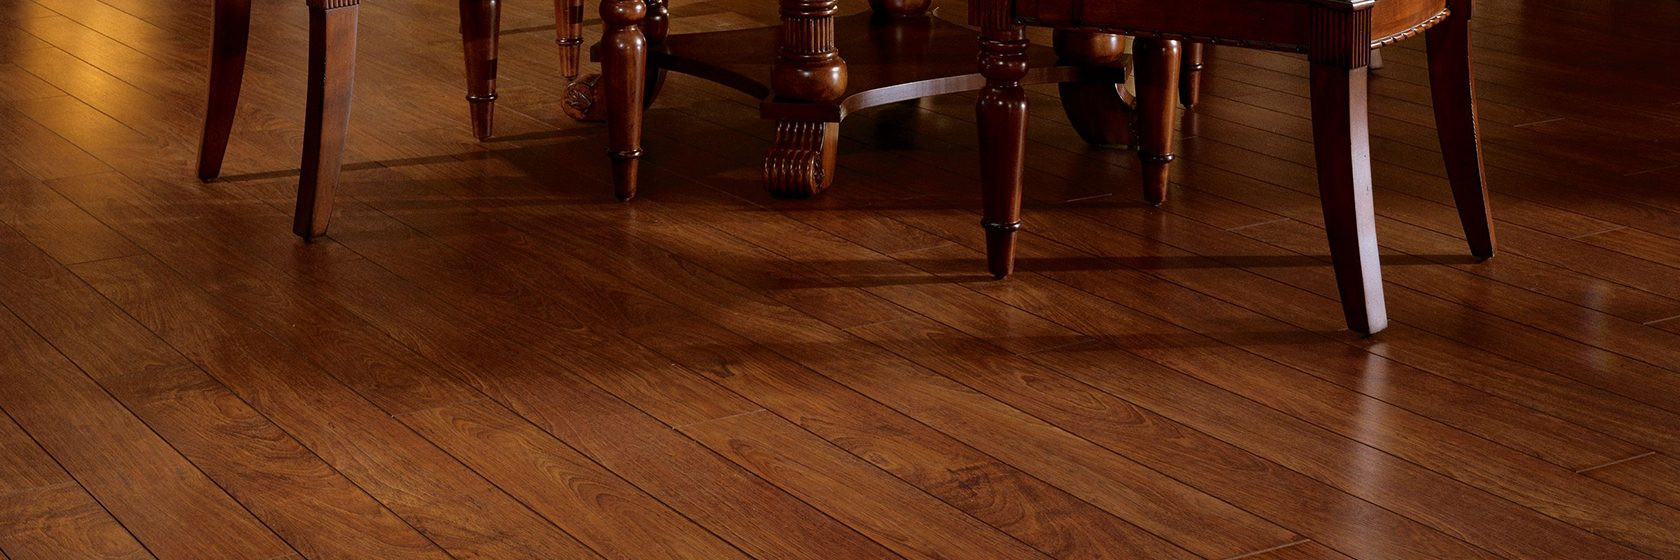 wide plank hardwood flooring for sale of laminate exotic olive ash l8708 pertaining to hero l 1680 560